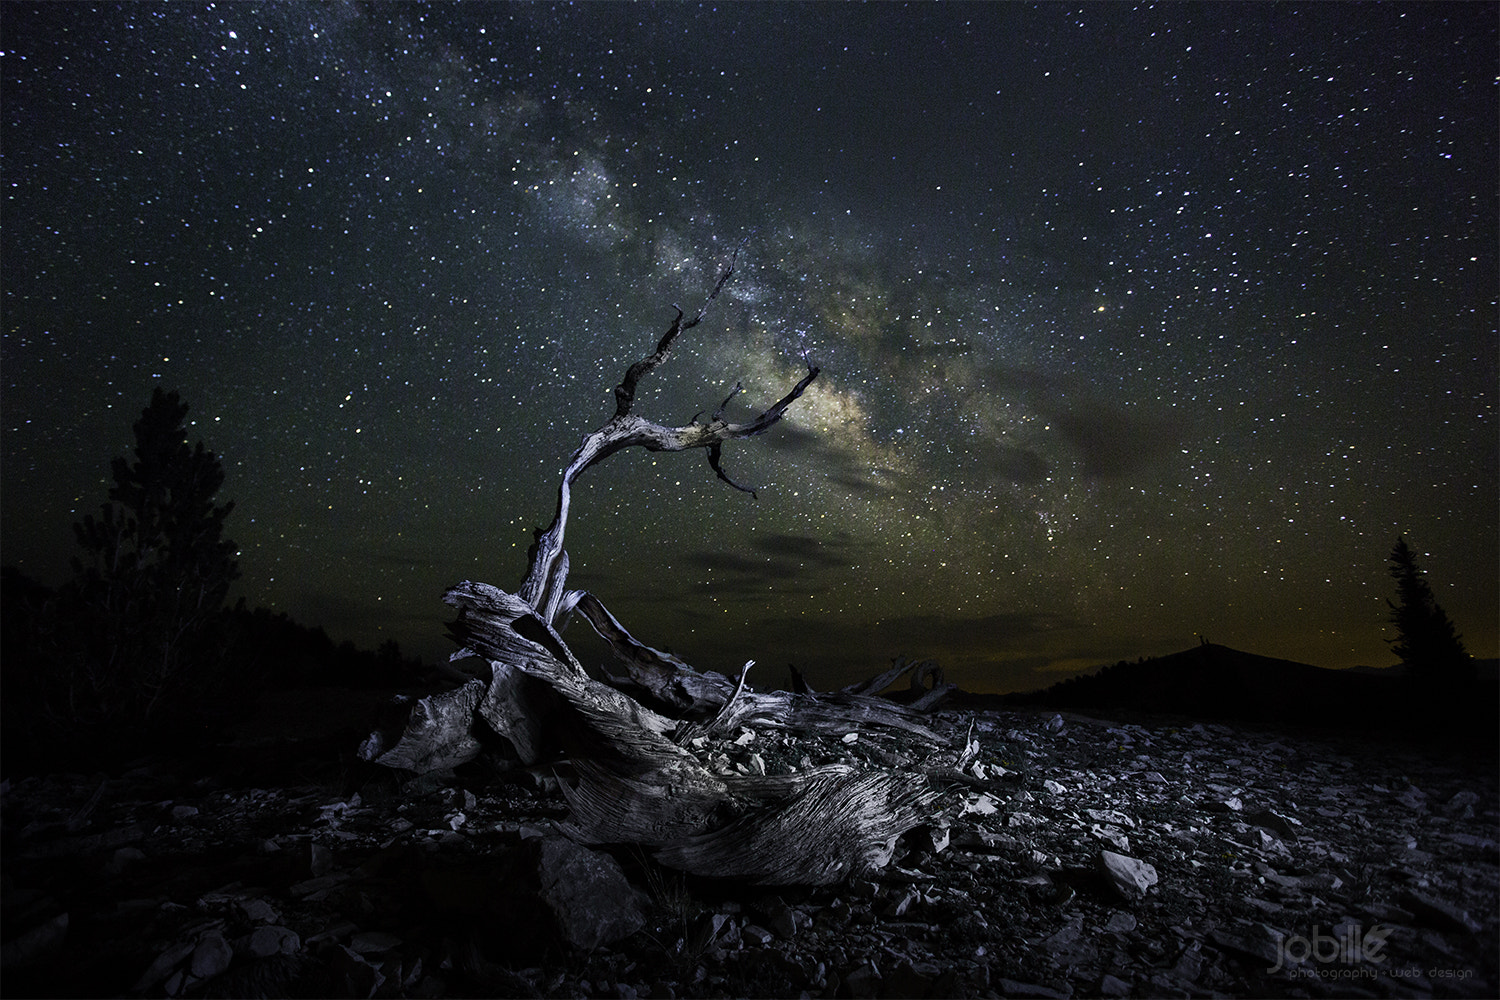 Photograph Dead Ancient Bristlecone pine by Jerome Obille on 500px